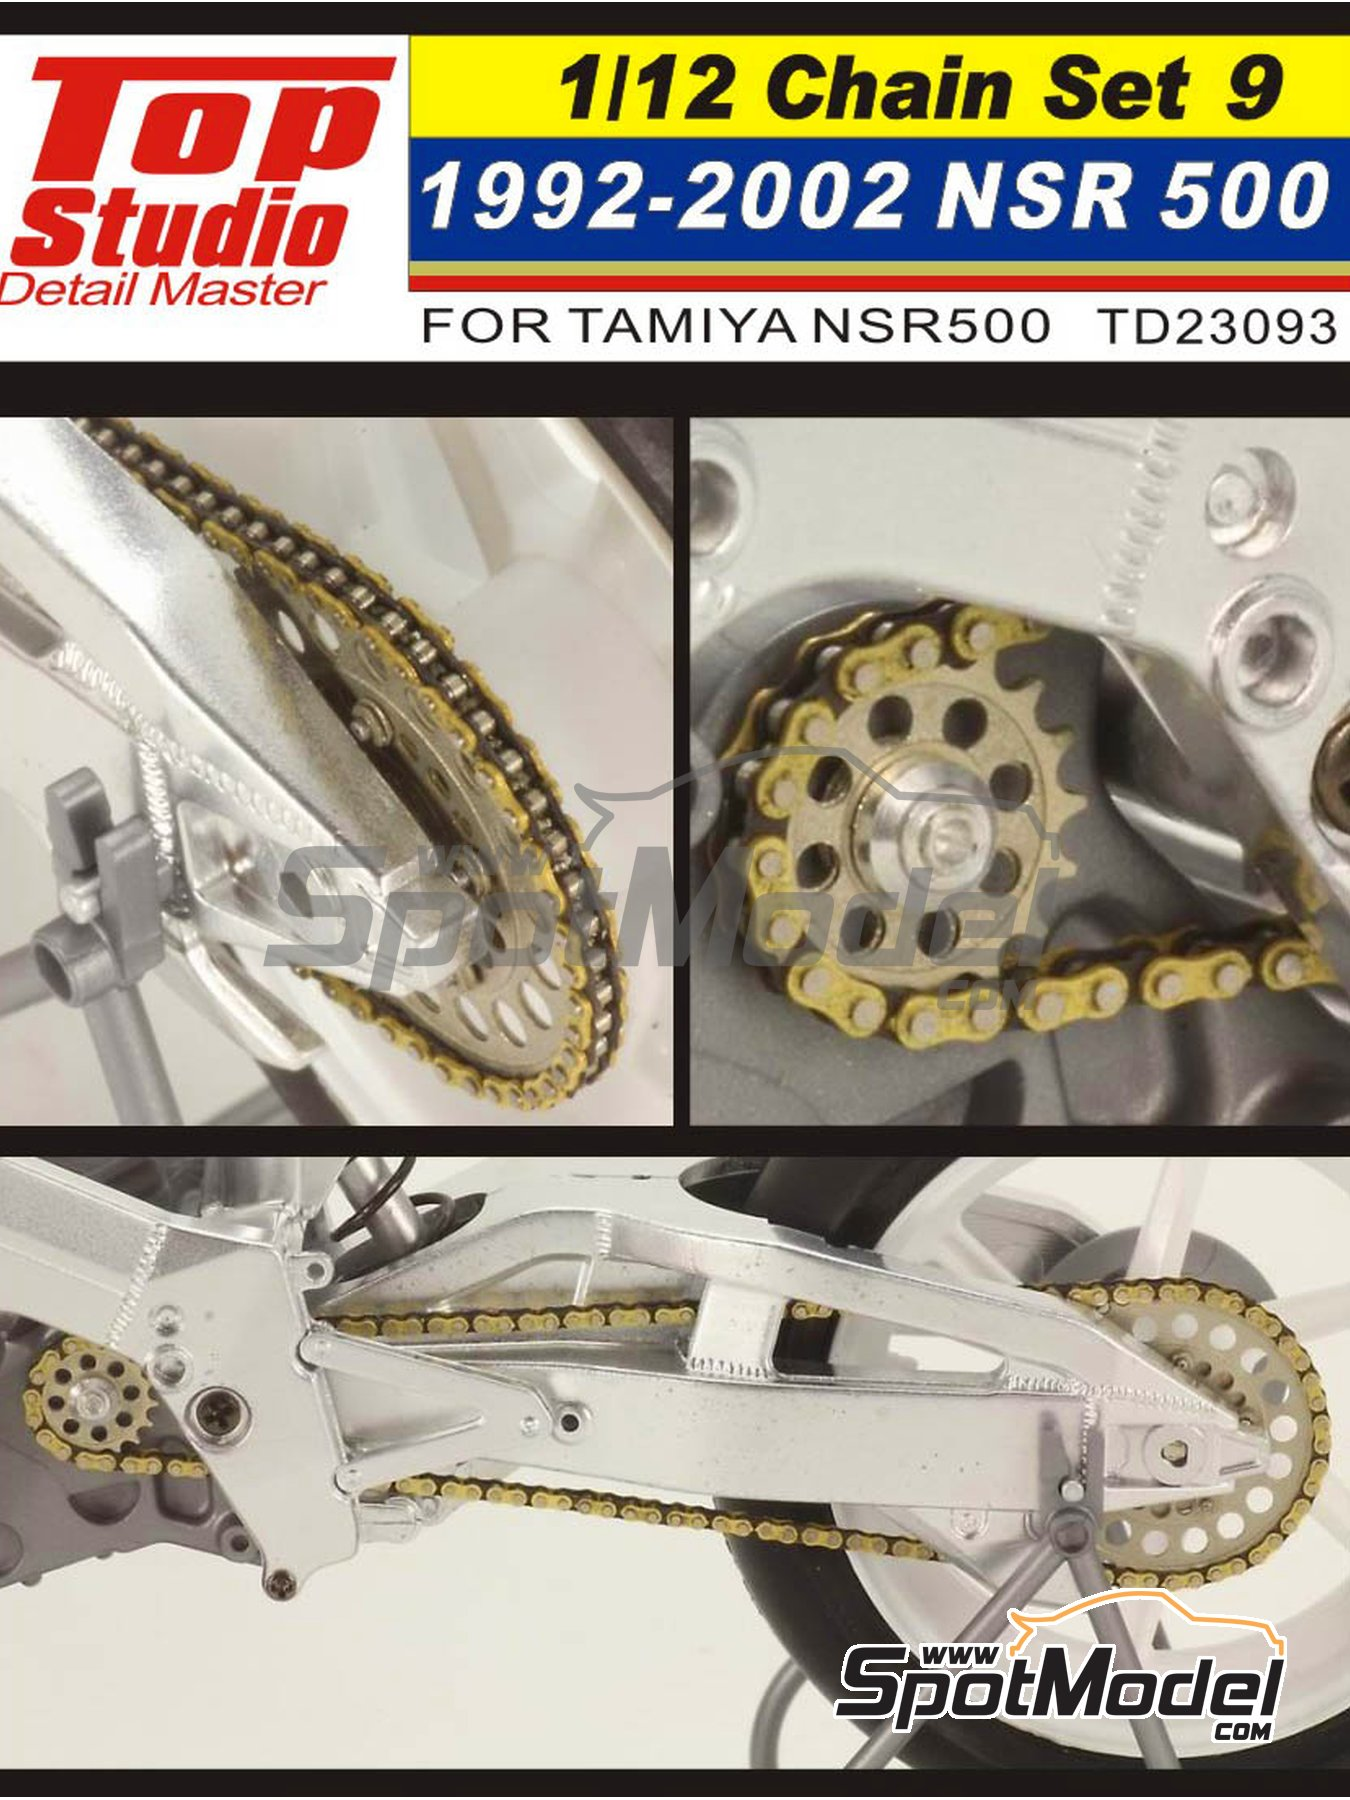 Honda NSR500 - Motorcycle World Championship 1992, 1993, 1994, 1995, 1996, 1997, 1998, 1999, 2000, 2001 and 2002 | Chain set in 1/12 scale manufactured by Top Studio (ref. TD23093) image